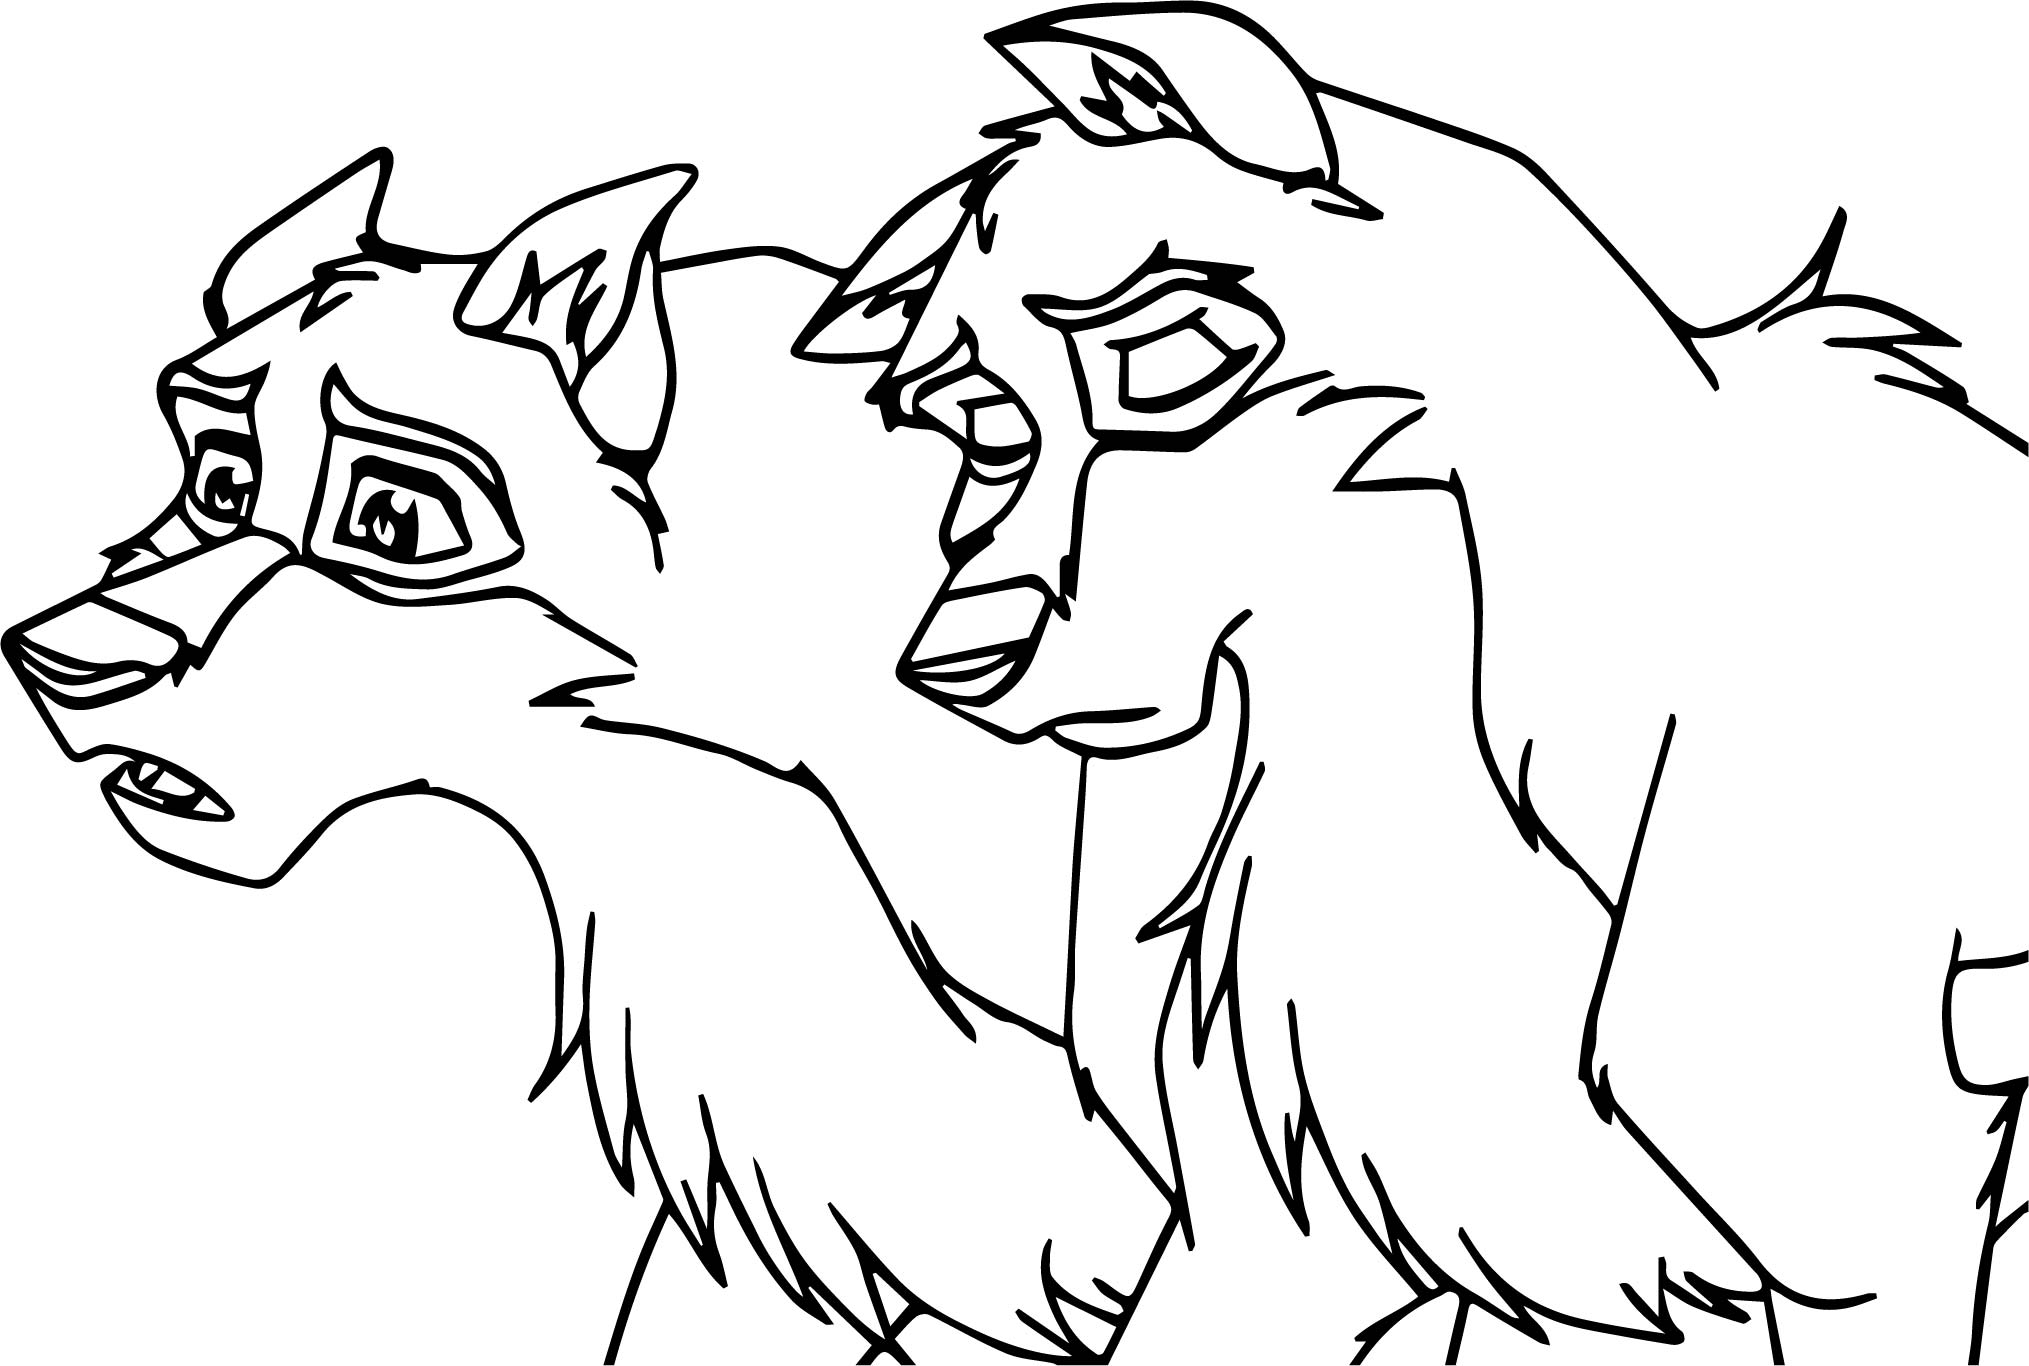 New Balto Base Wolf Coloring Page | Wecoloringpage.com